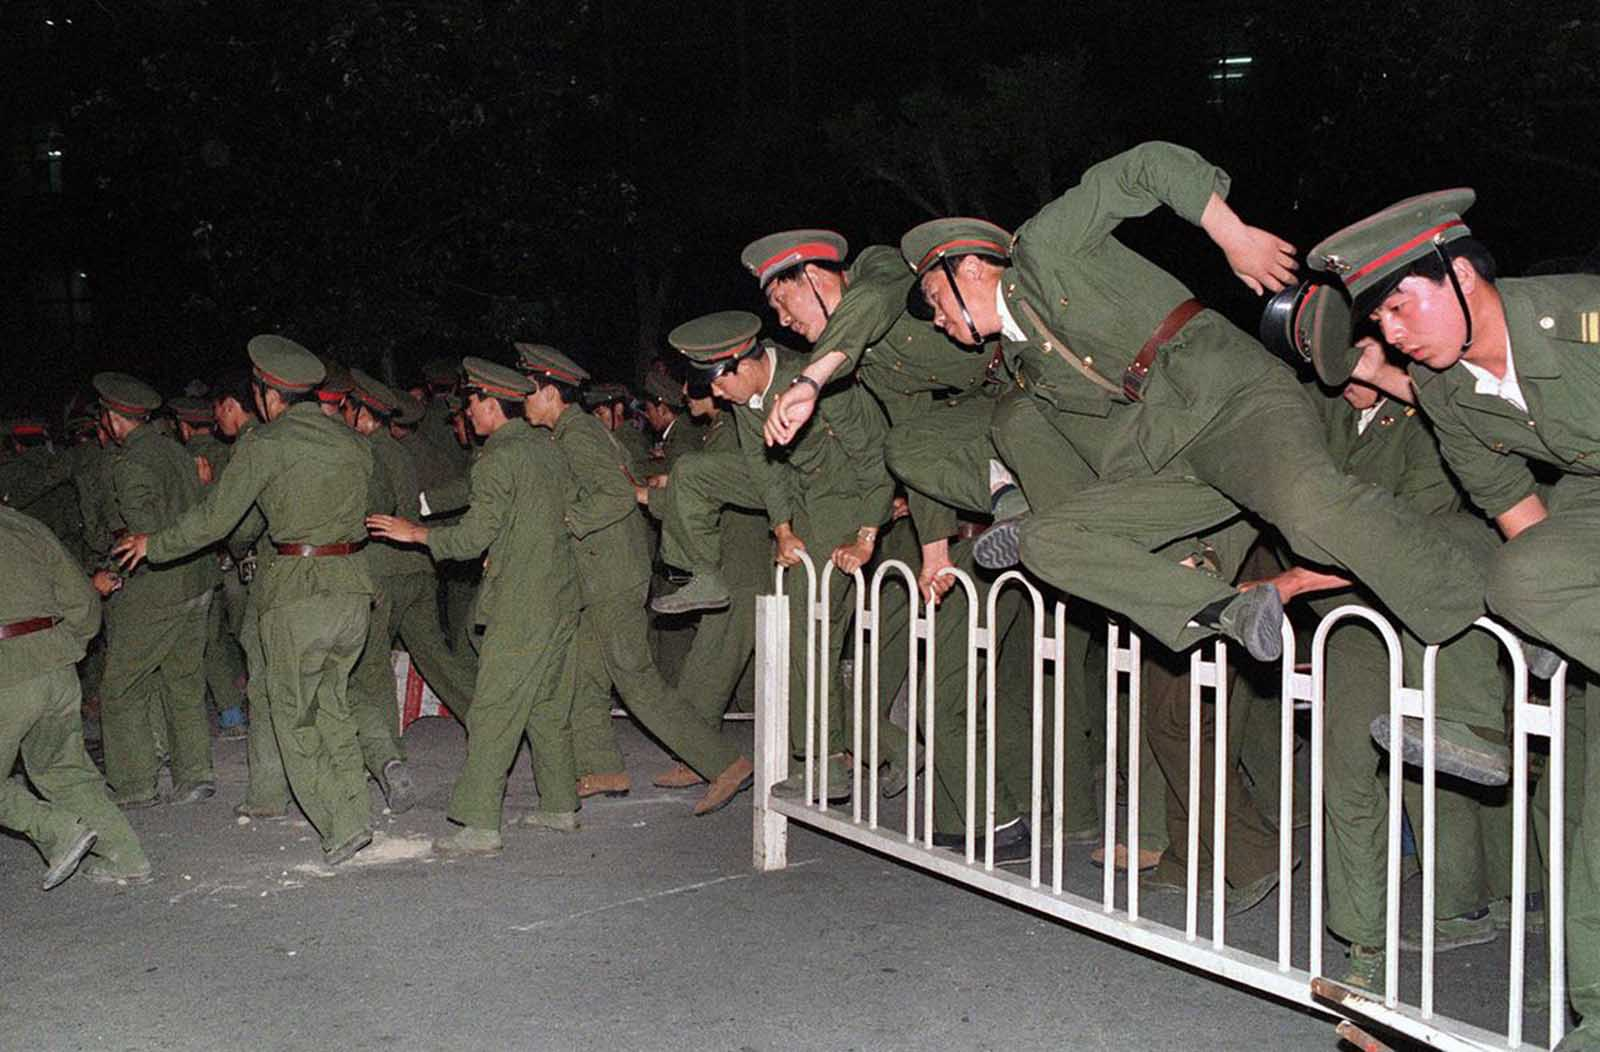 People's Liberation Army (PLA) soldiers leap over a barrier on Tiananmen Square on June 4, 1989, during heavy clashes with people and dissident students. The PLA was reportedly under orders to clear the square by 6:00 am, with no exceptions.